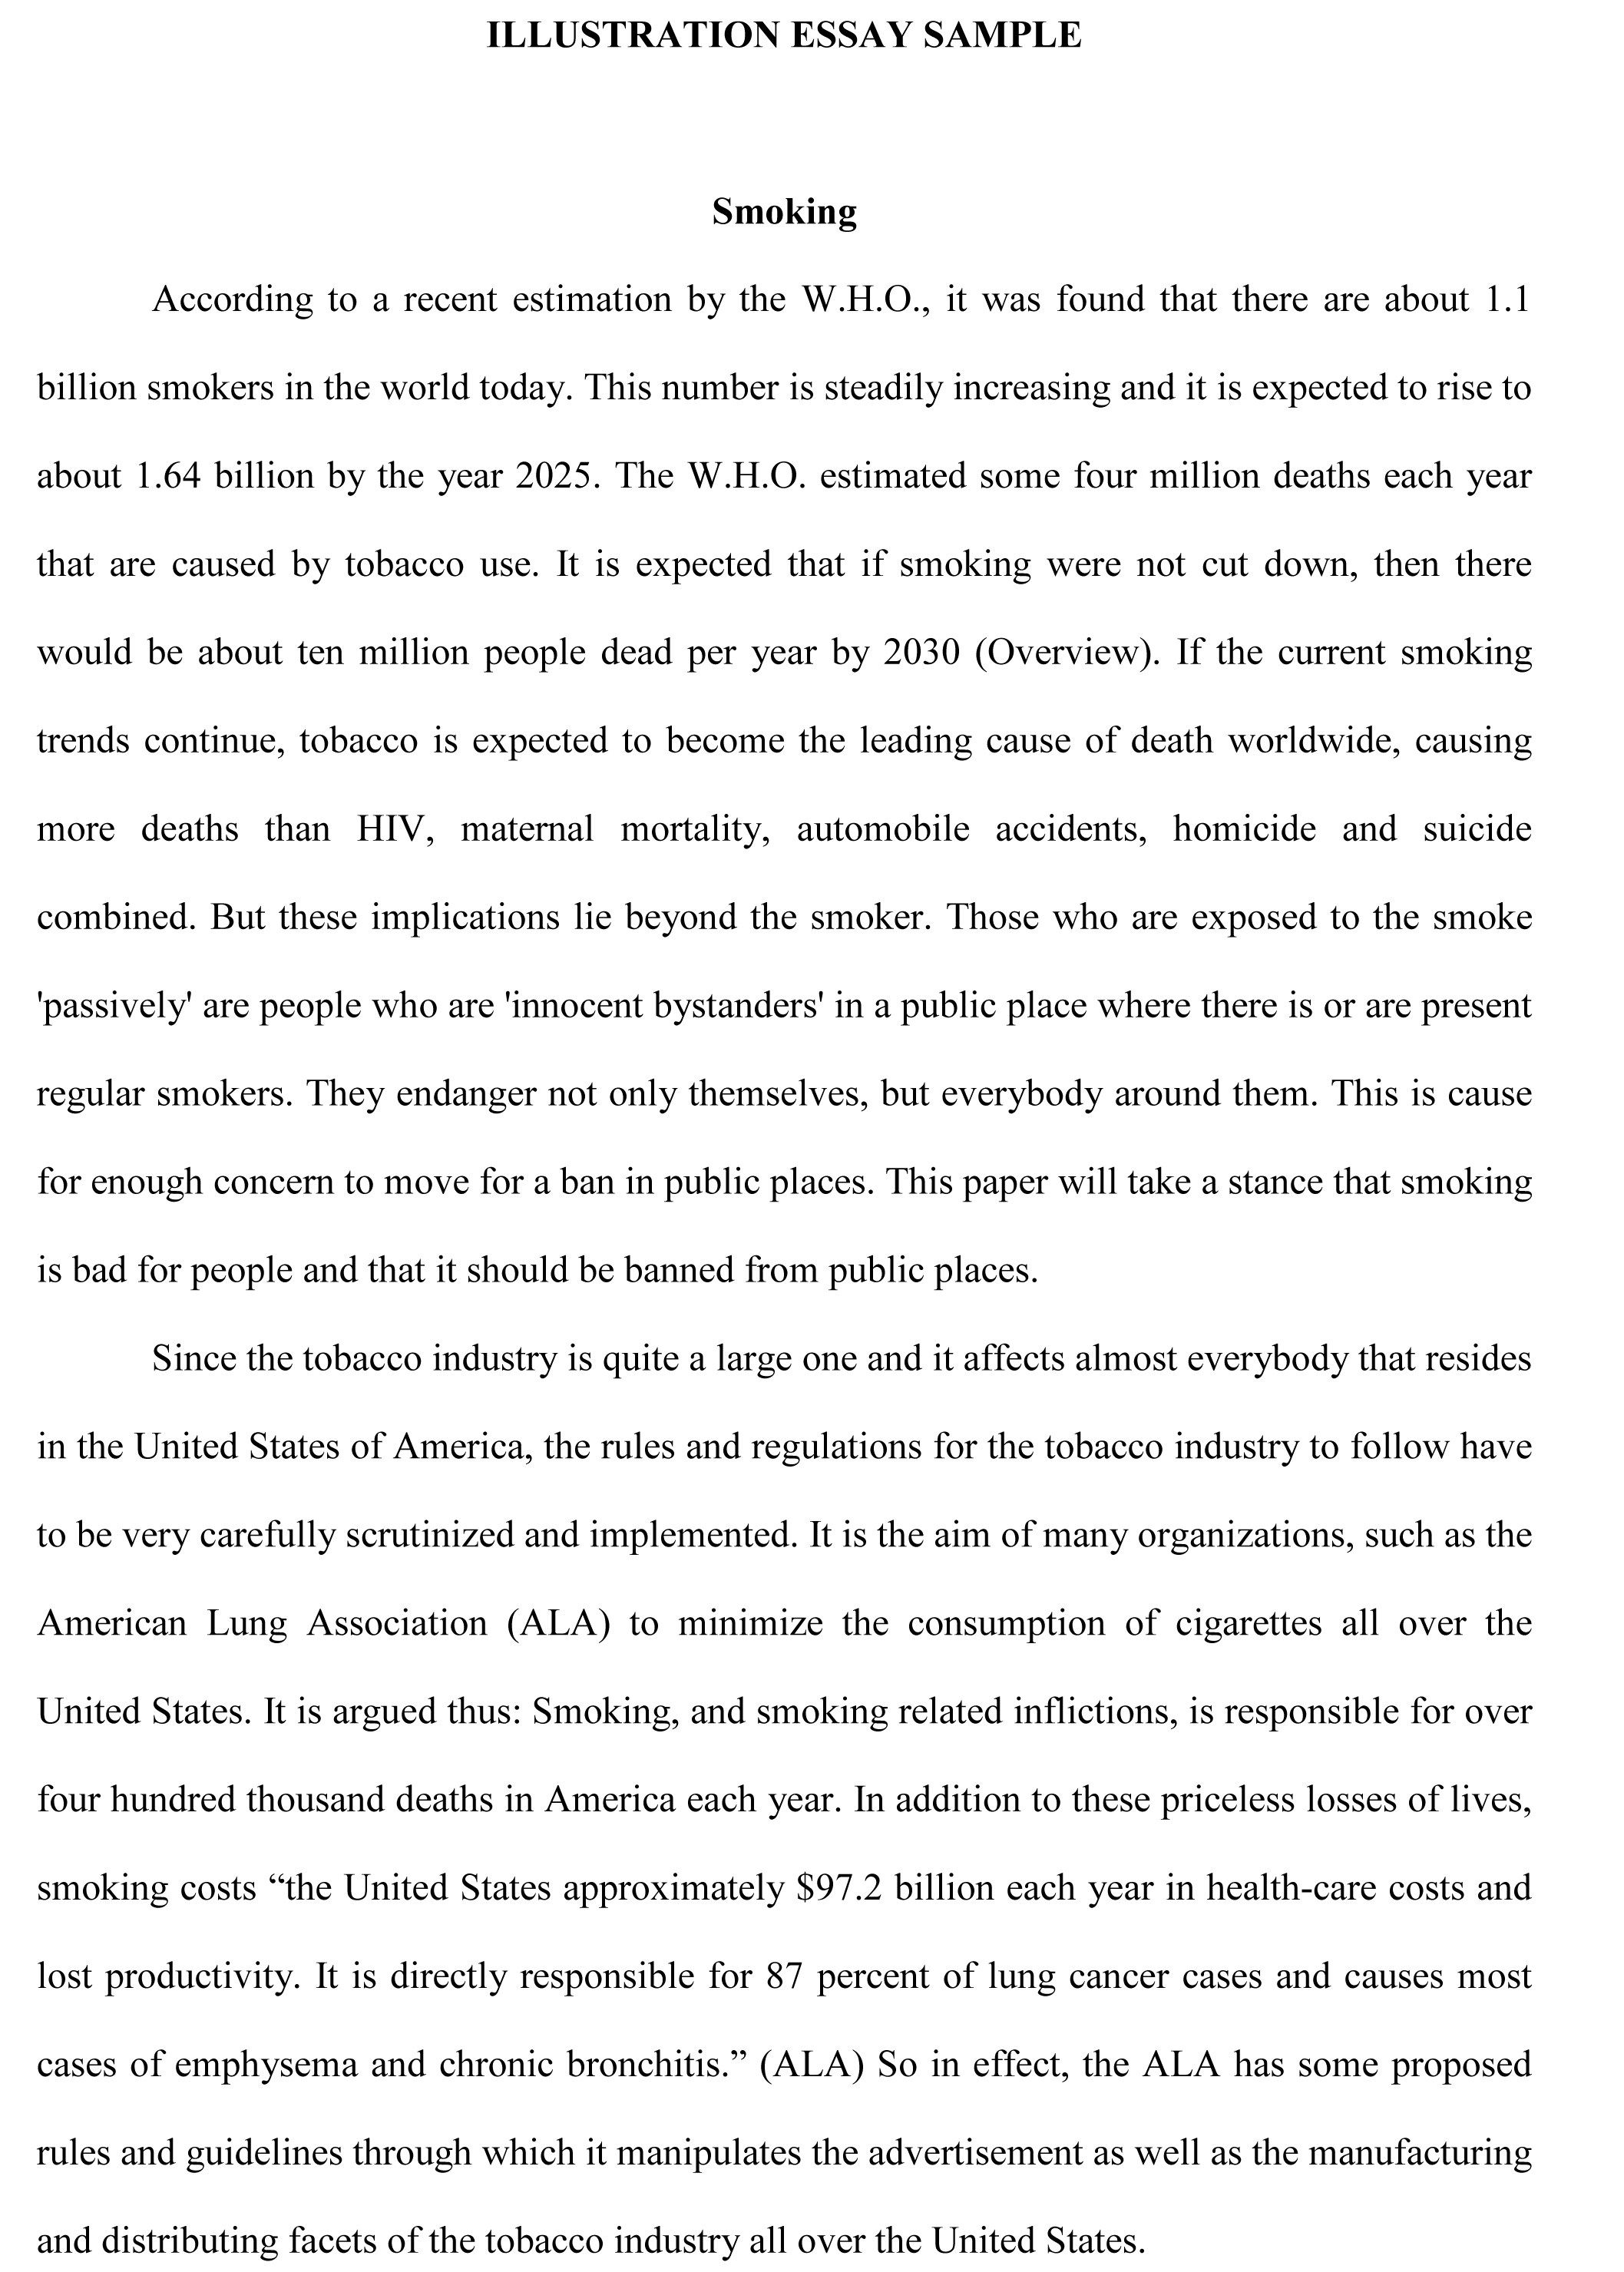 021 Illustration Essay Sample Example Descriptive Exceptional Topics Writing For Ibps Po Mains High School Students Prompts Full